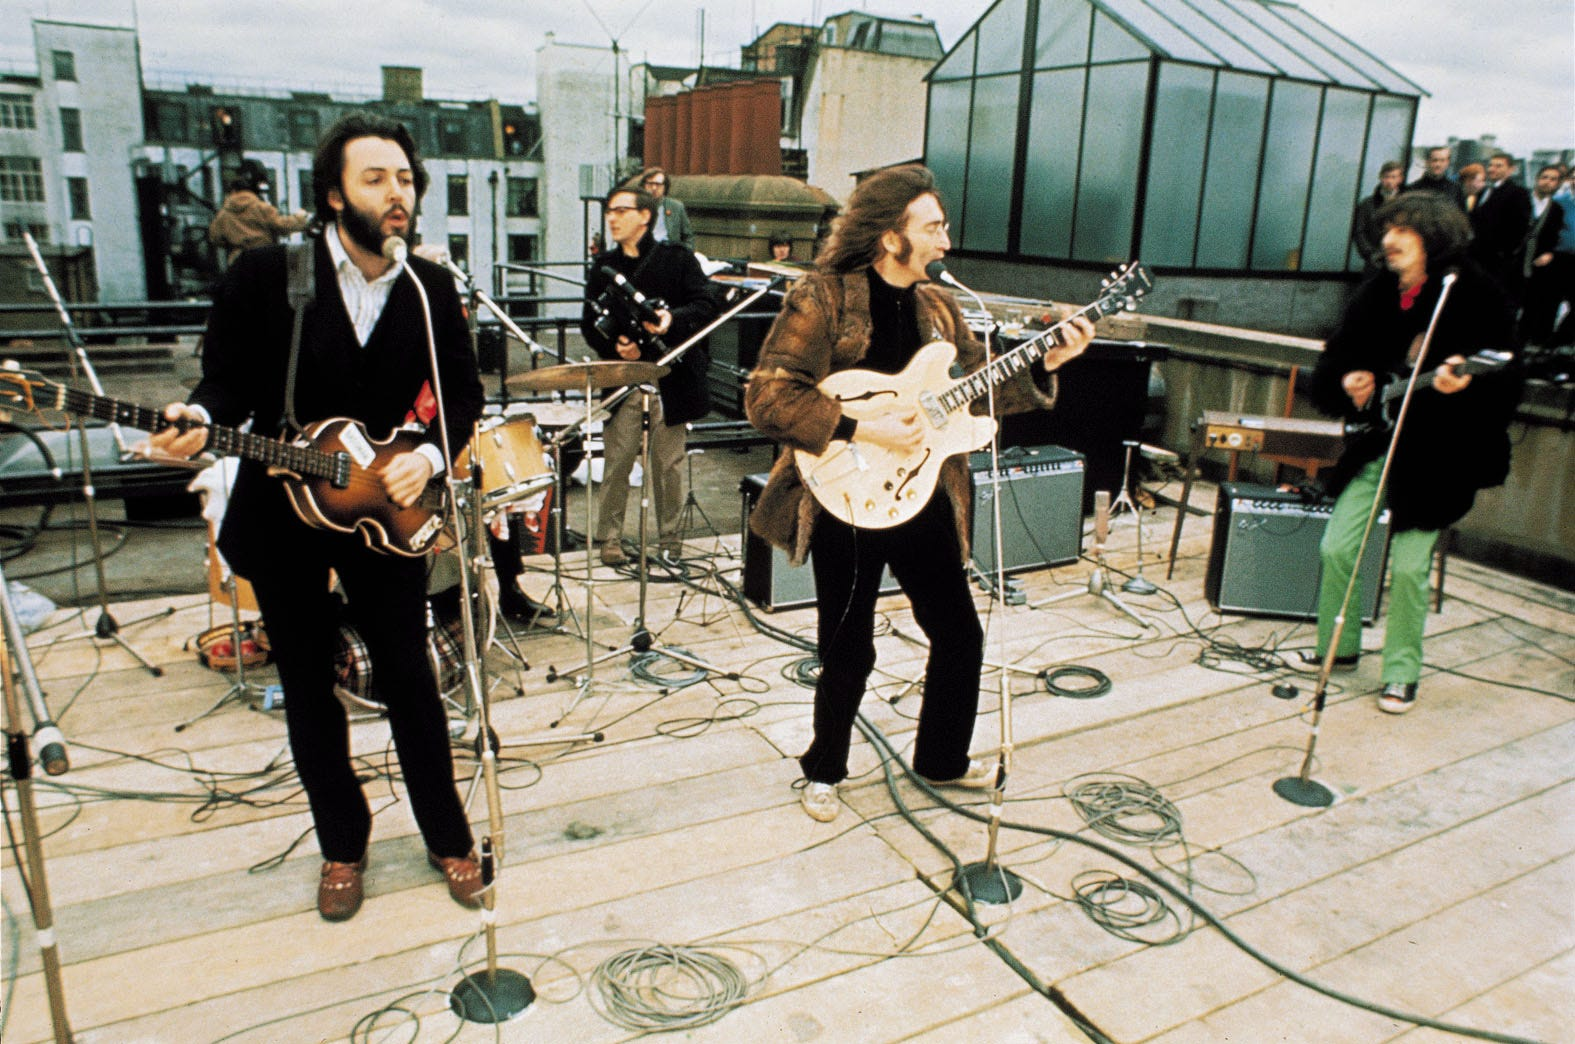 The Beatles Rooftop Let it be Photo Print 8 x 10/""